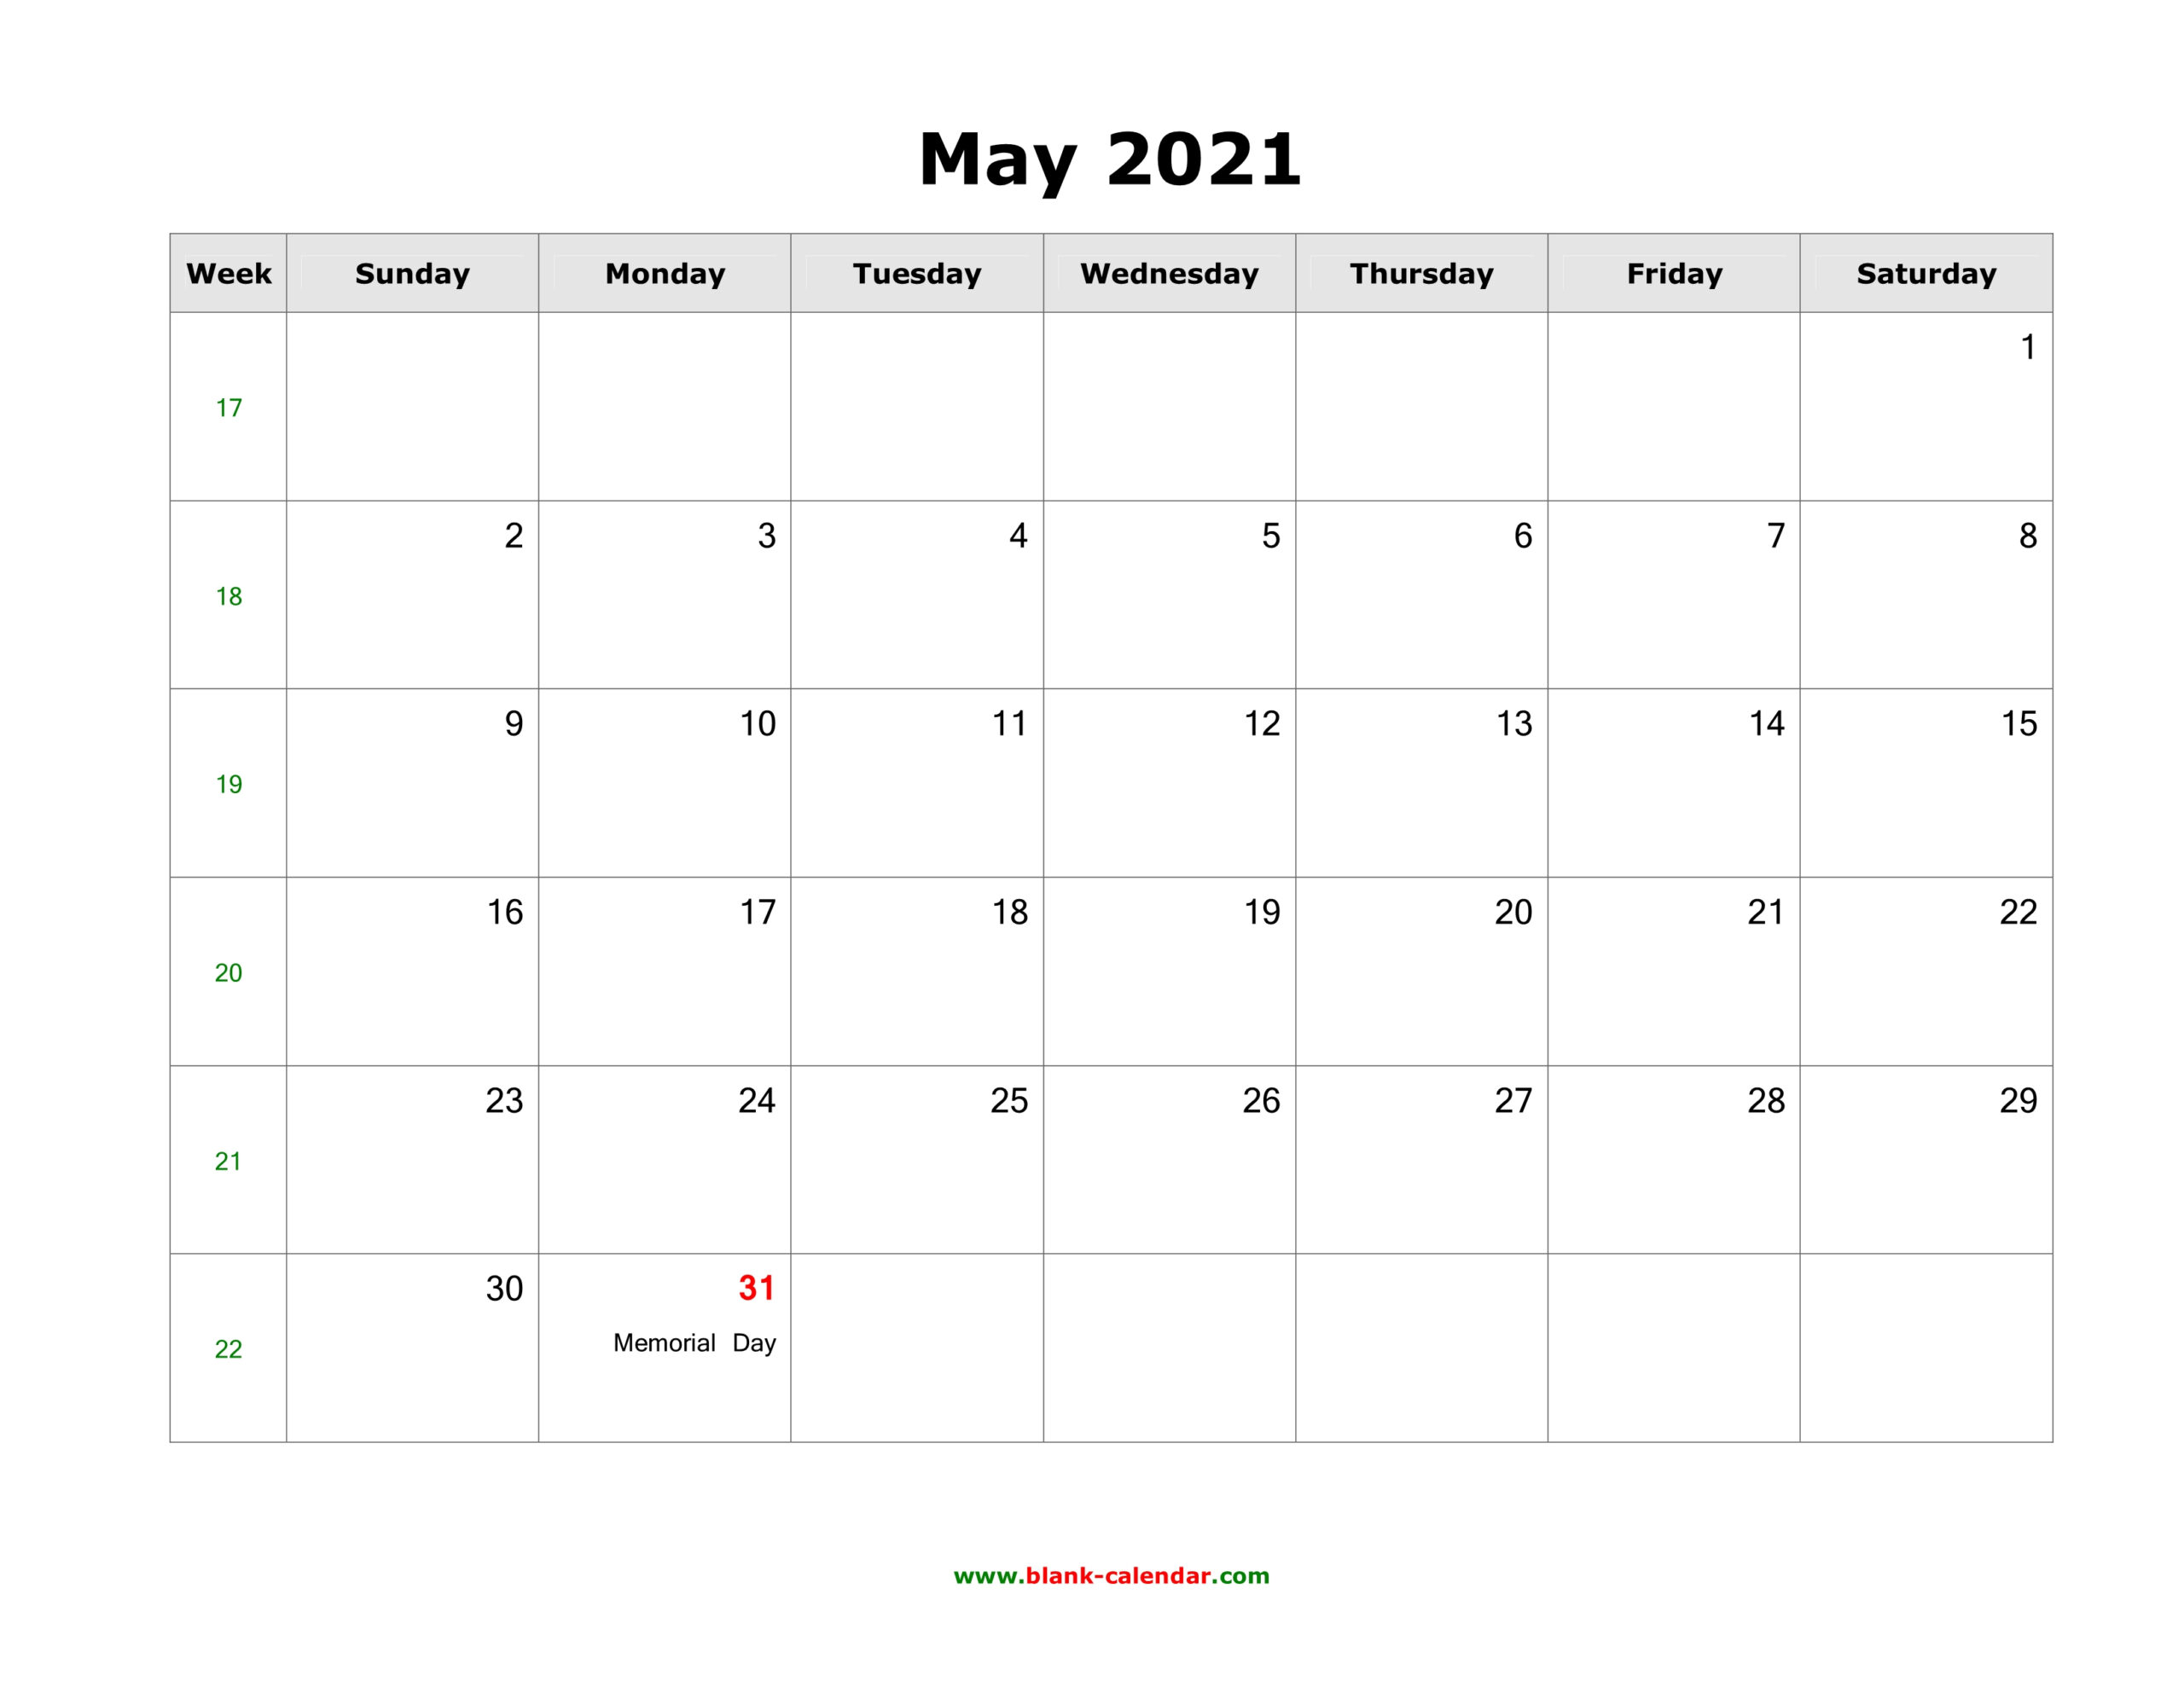 May 2021 Blank Calendar | Free Download Calendar Templates for Free Calendars 2021 Word Doc Printable August